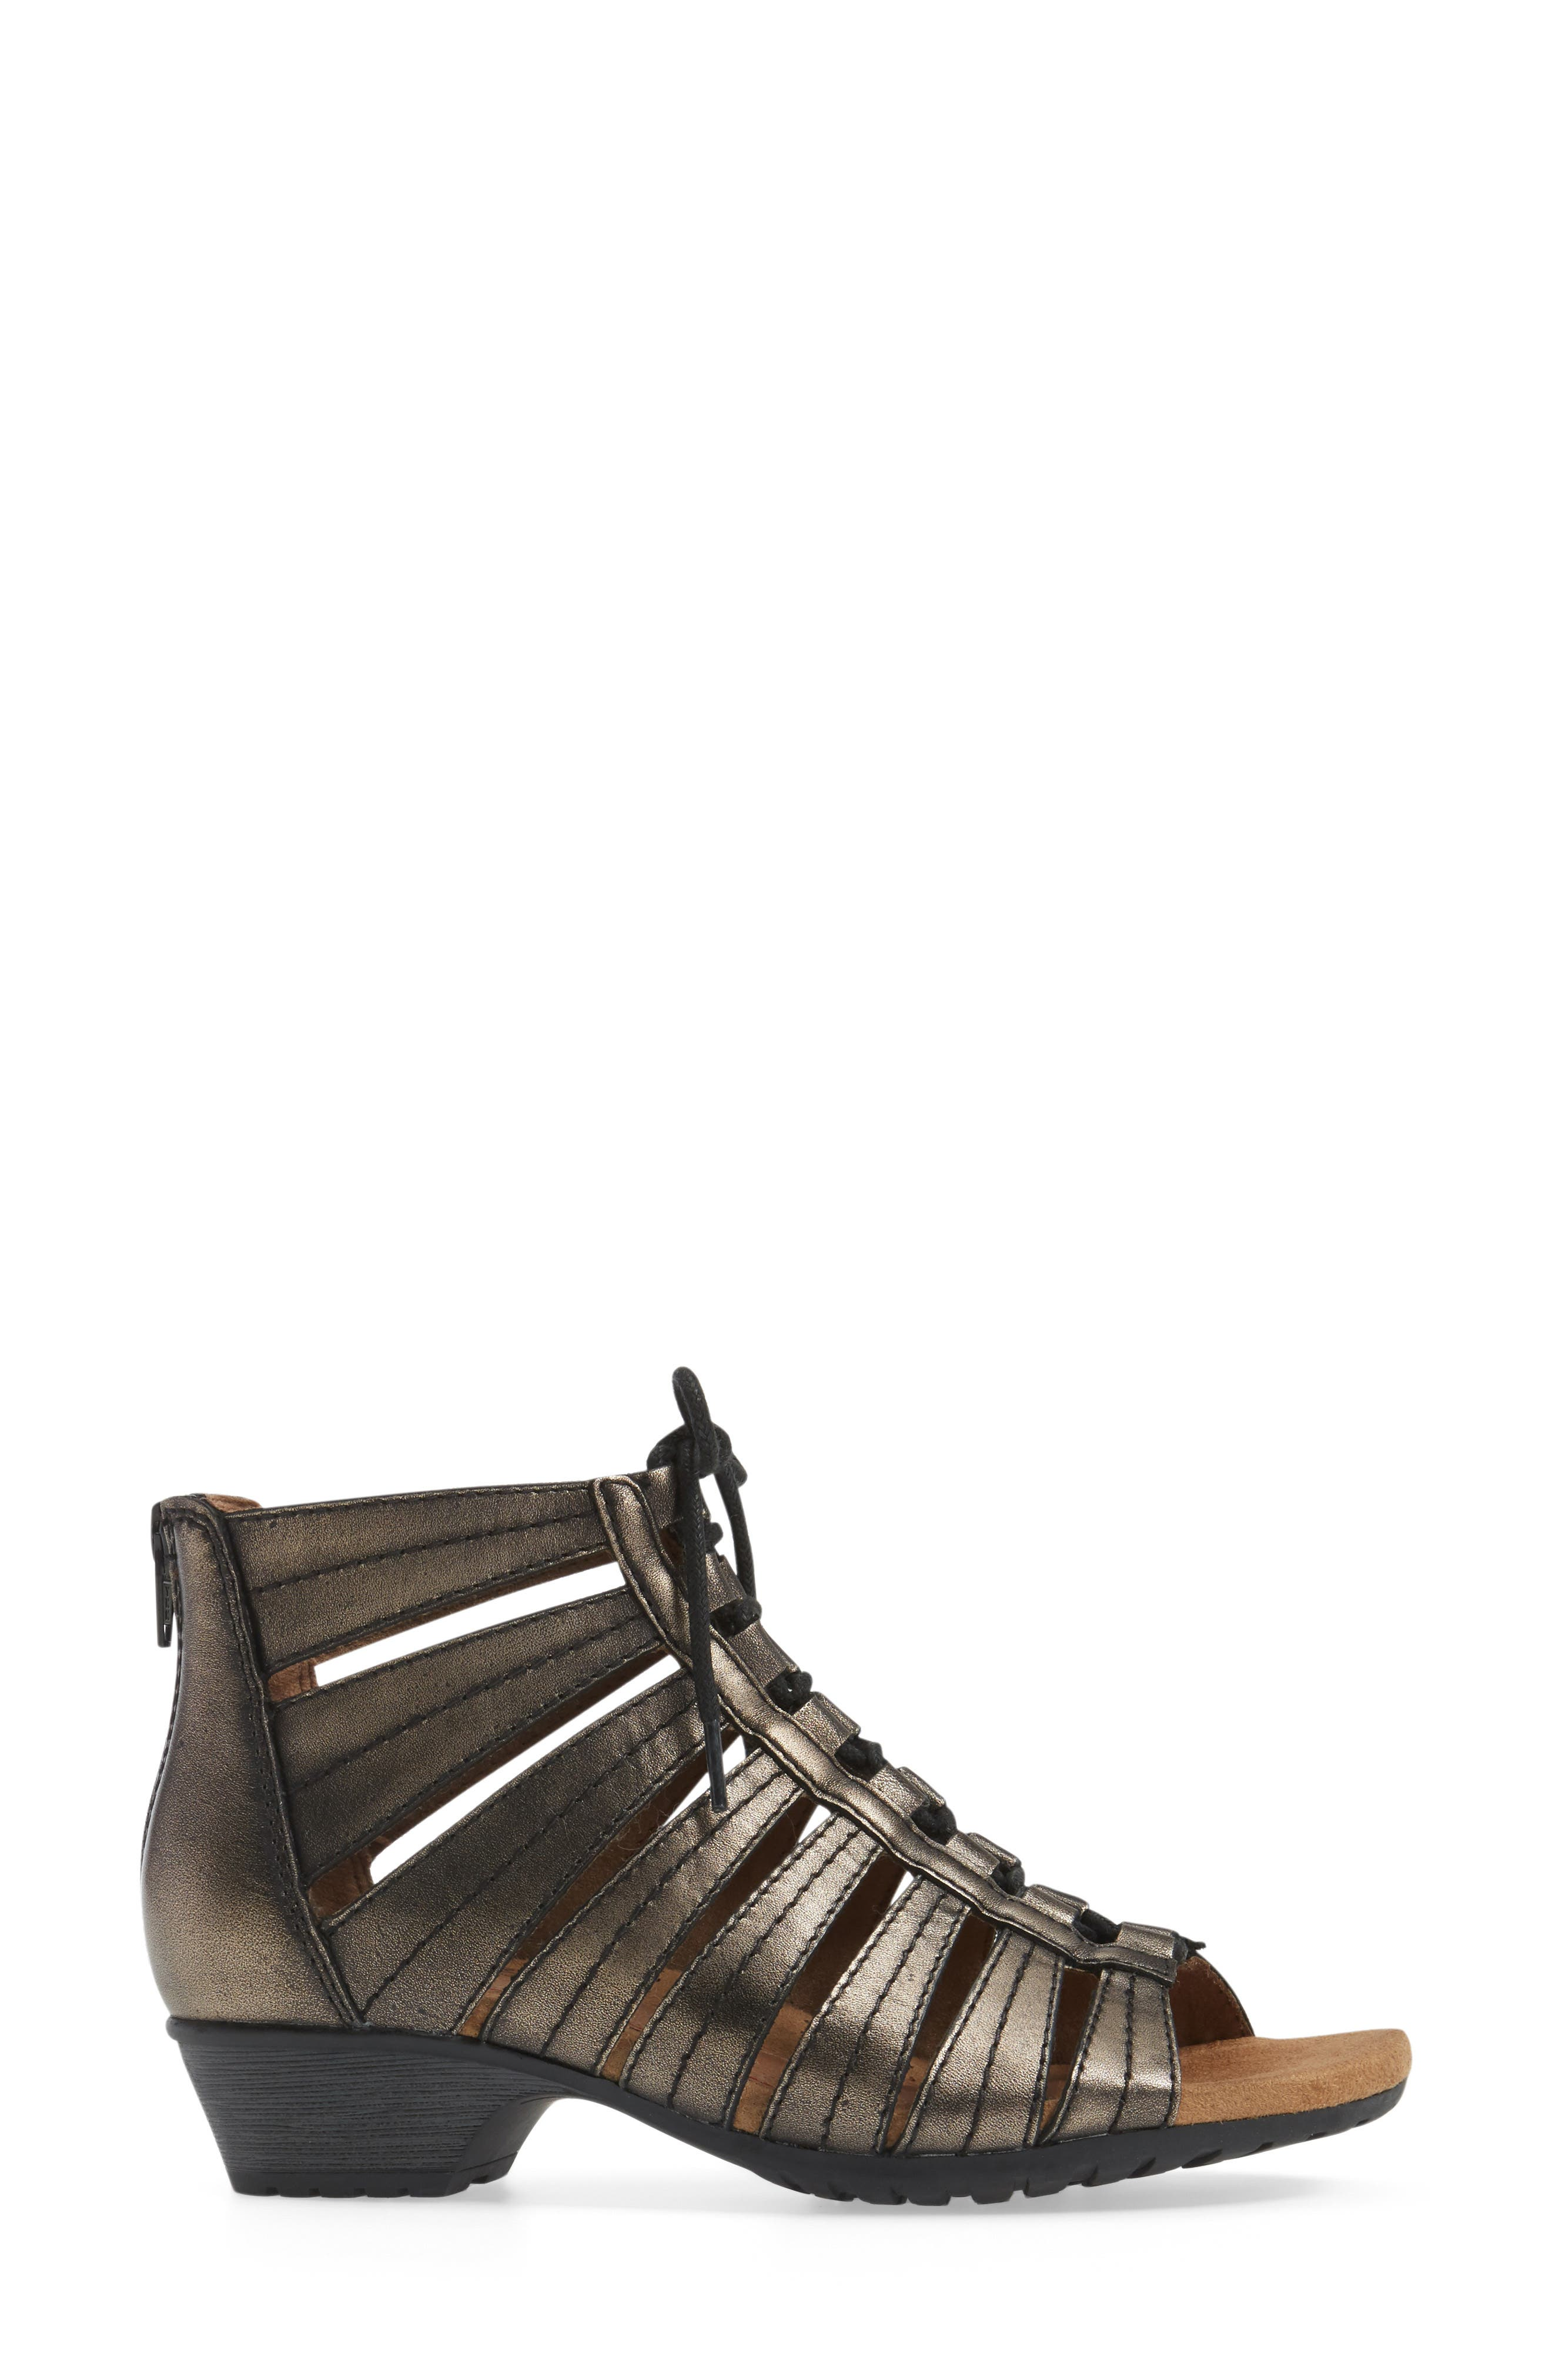 'Gabby' Lace-Up Sandal,                             Alternate thumbnail 20, color,